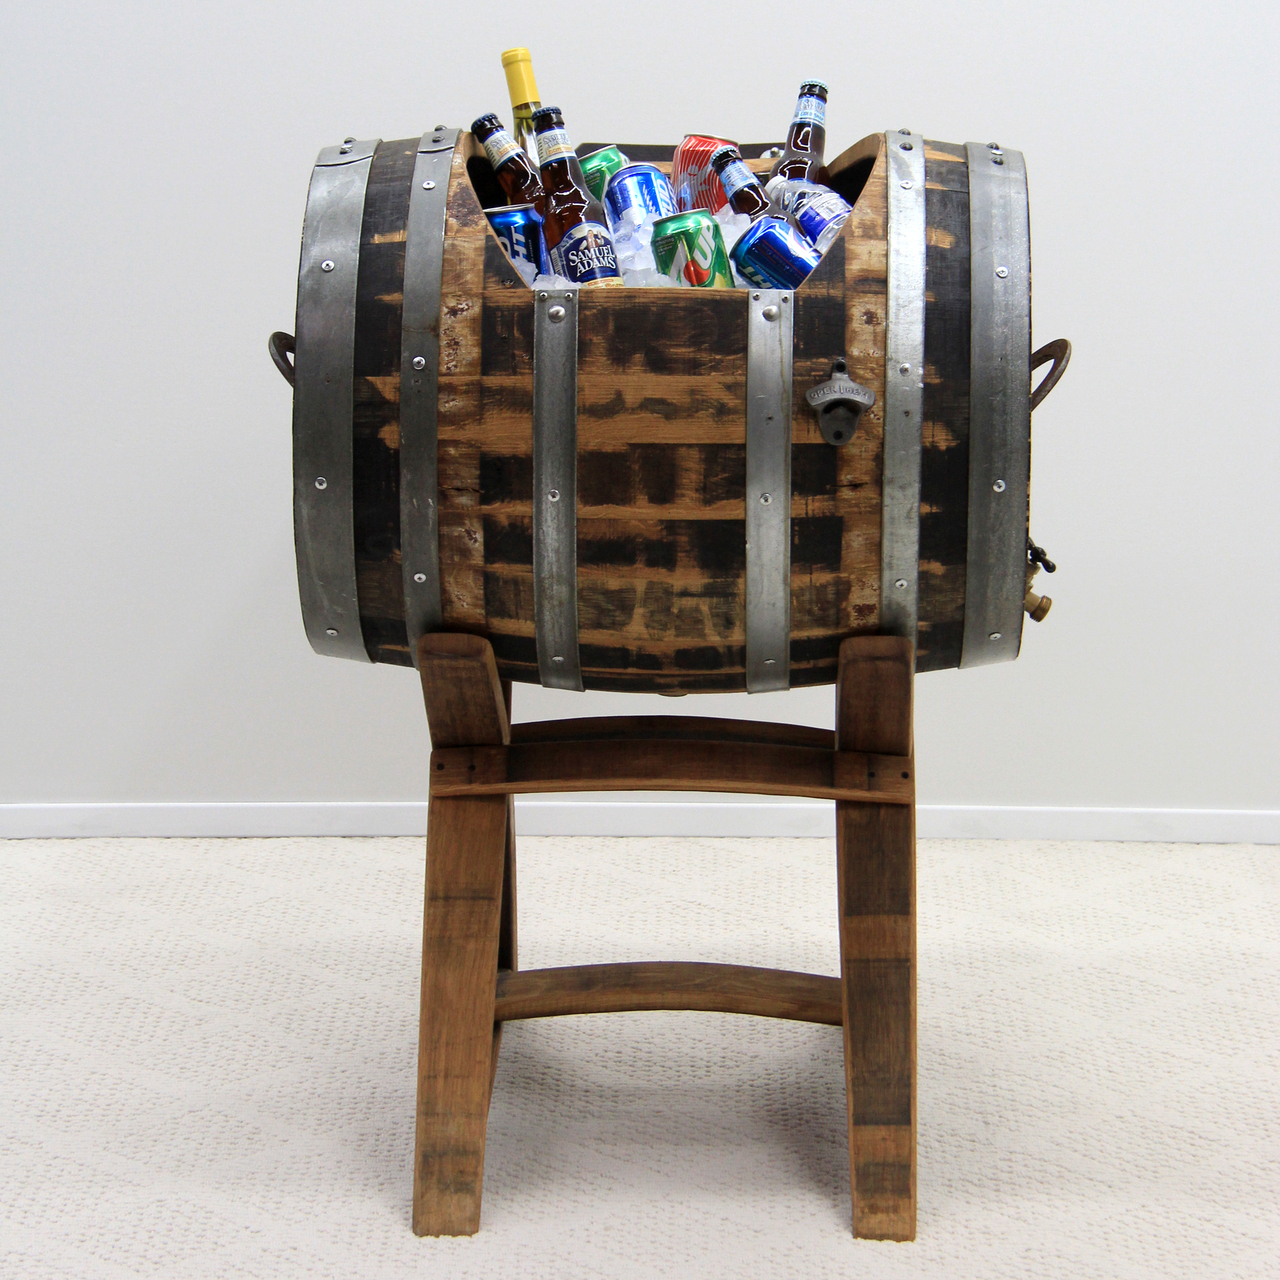 Full Oak Wine Barrel Horizontal Cooler